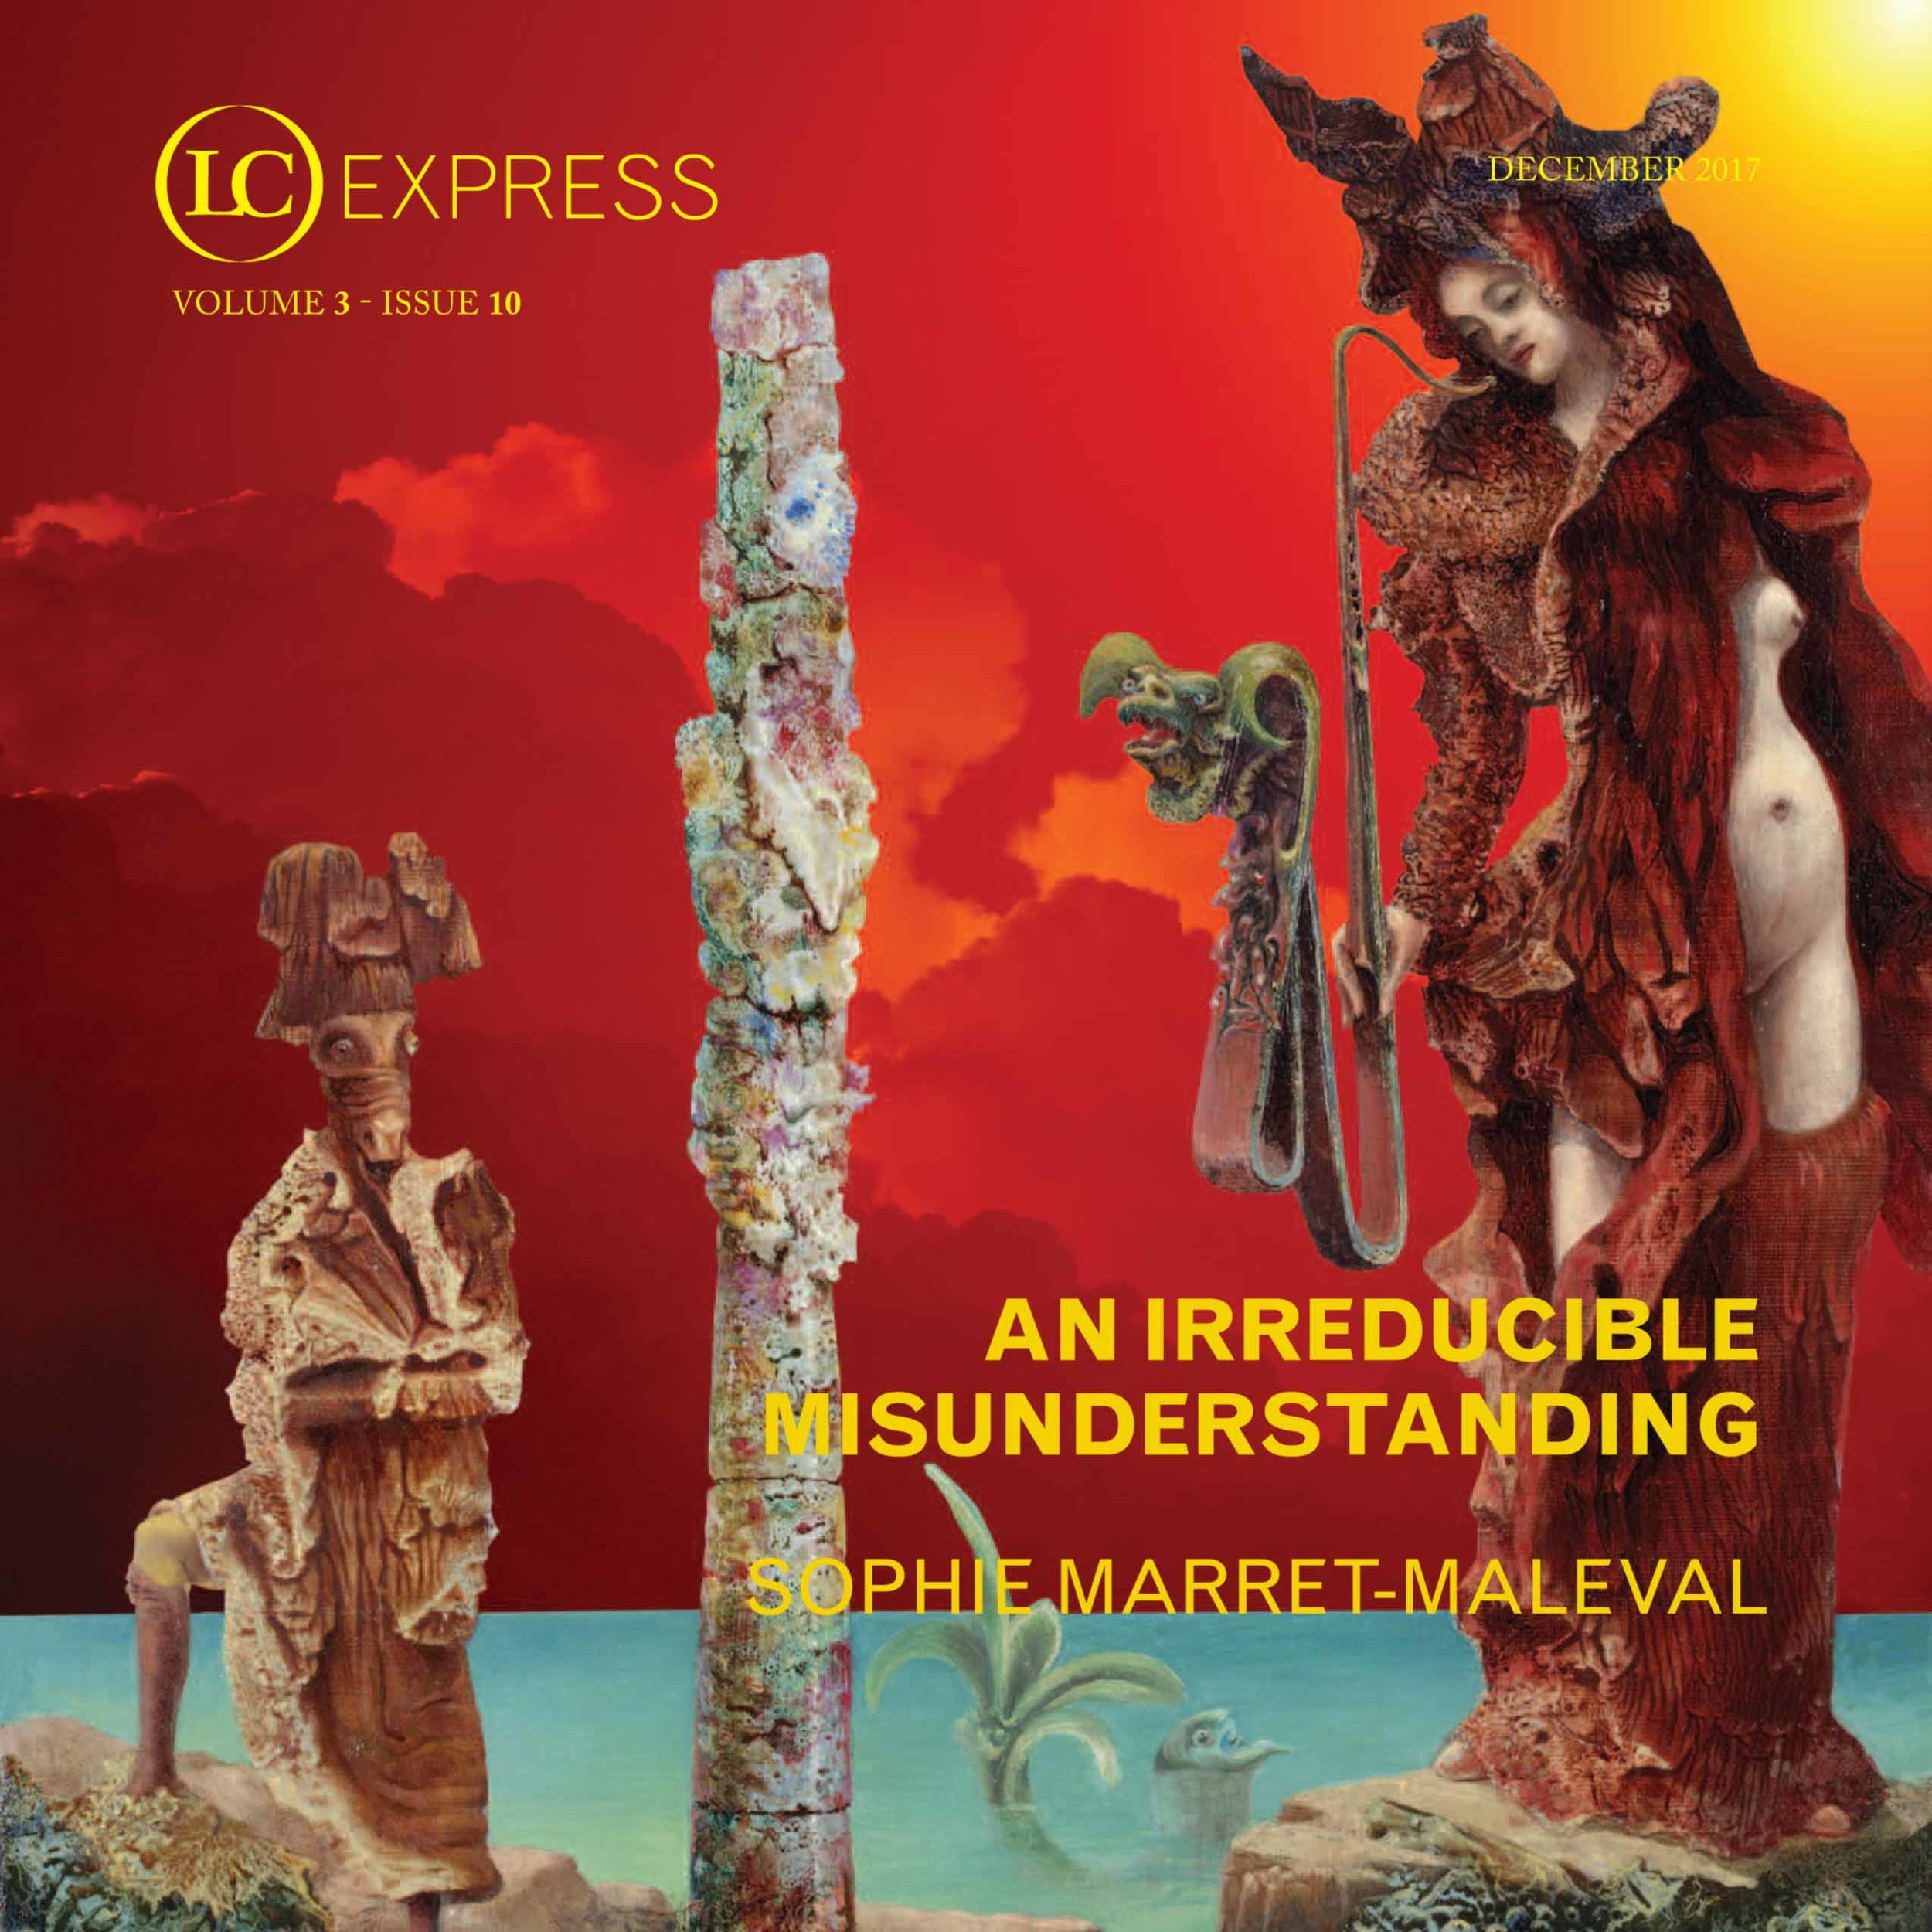 LCExpress Volume 3 / Issue 10  An Irreducible Misunderstanding   Sophie Marret-Maleval